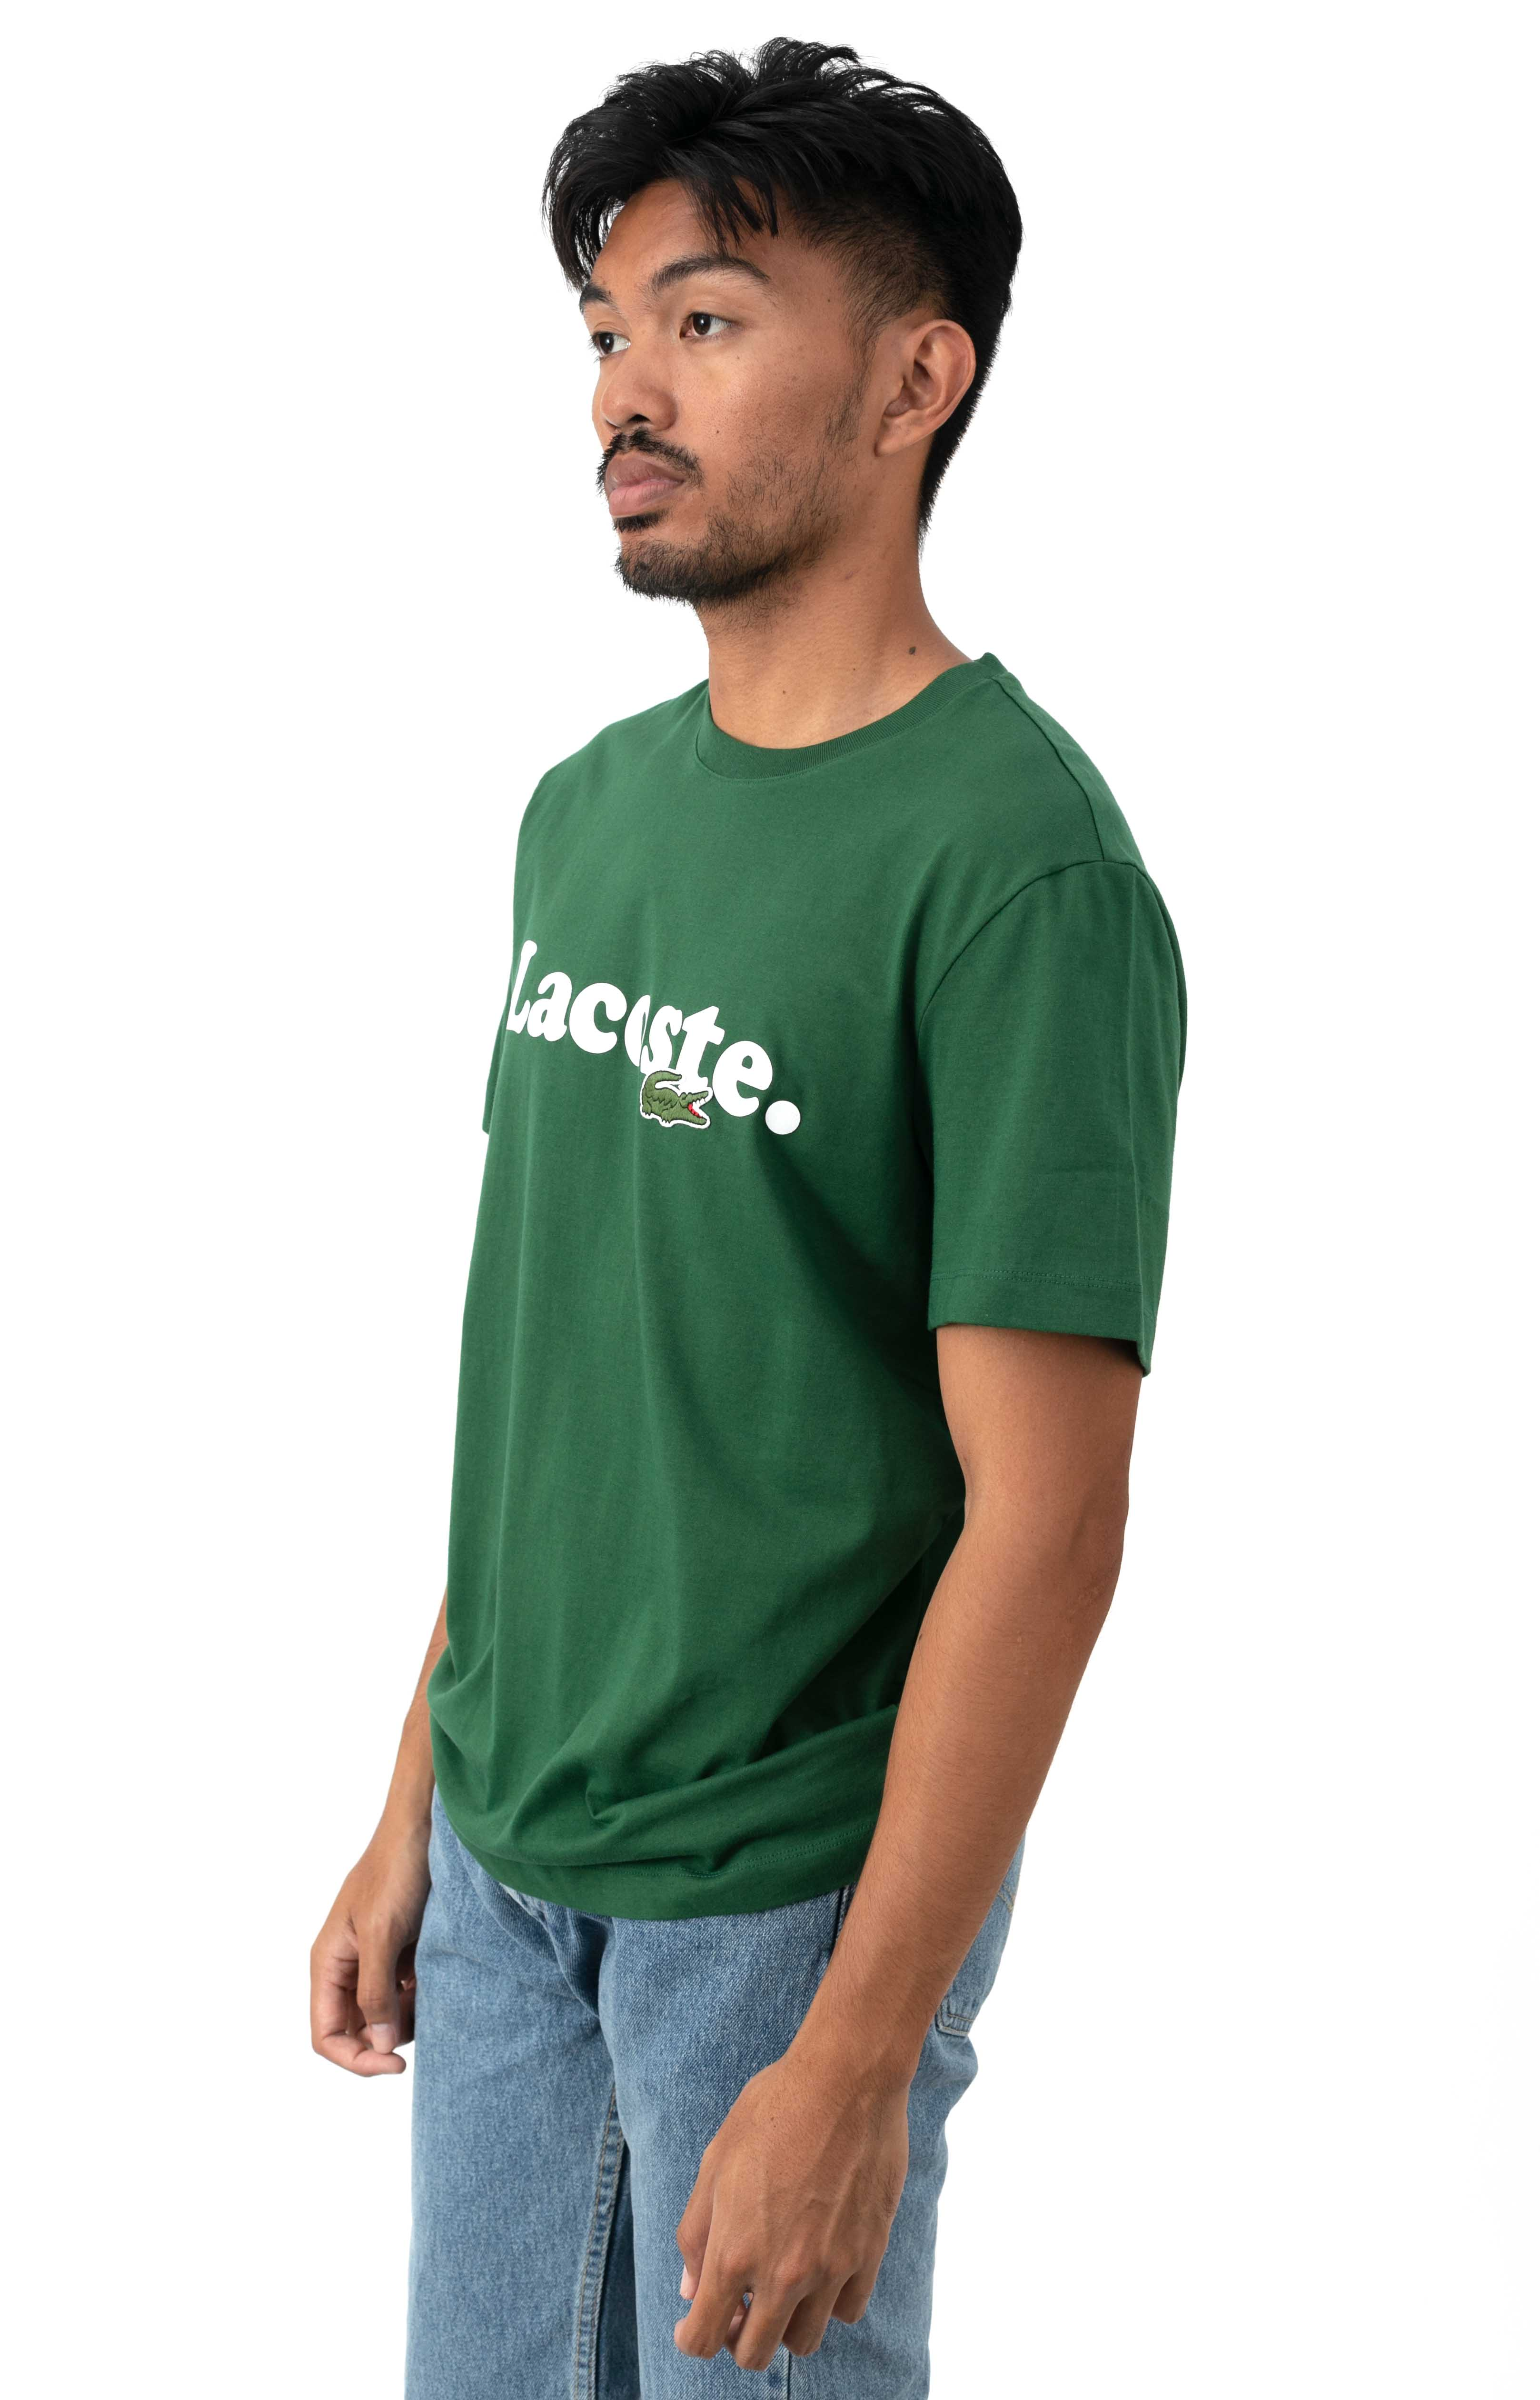 Lacoste And Crocodile Branded Cotton T-Shirt - Green  2